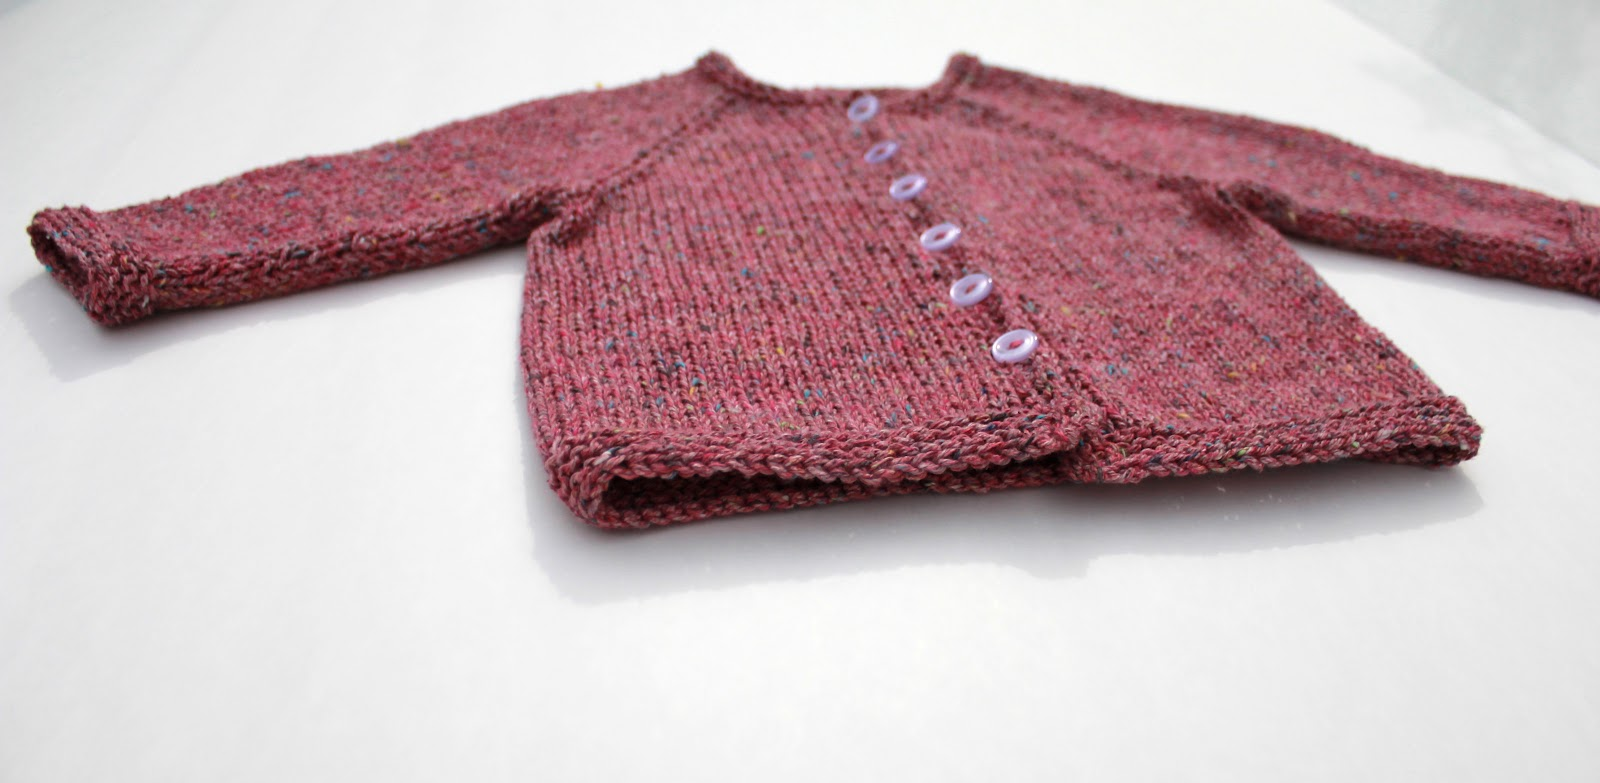 Absolute Knits: Basic Top Down Baby Cardigan